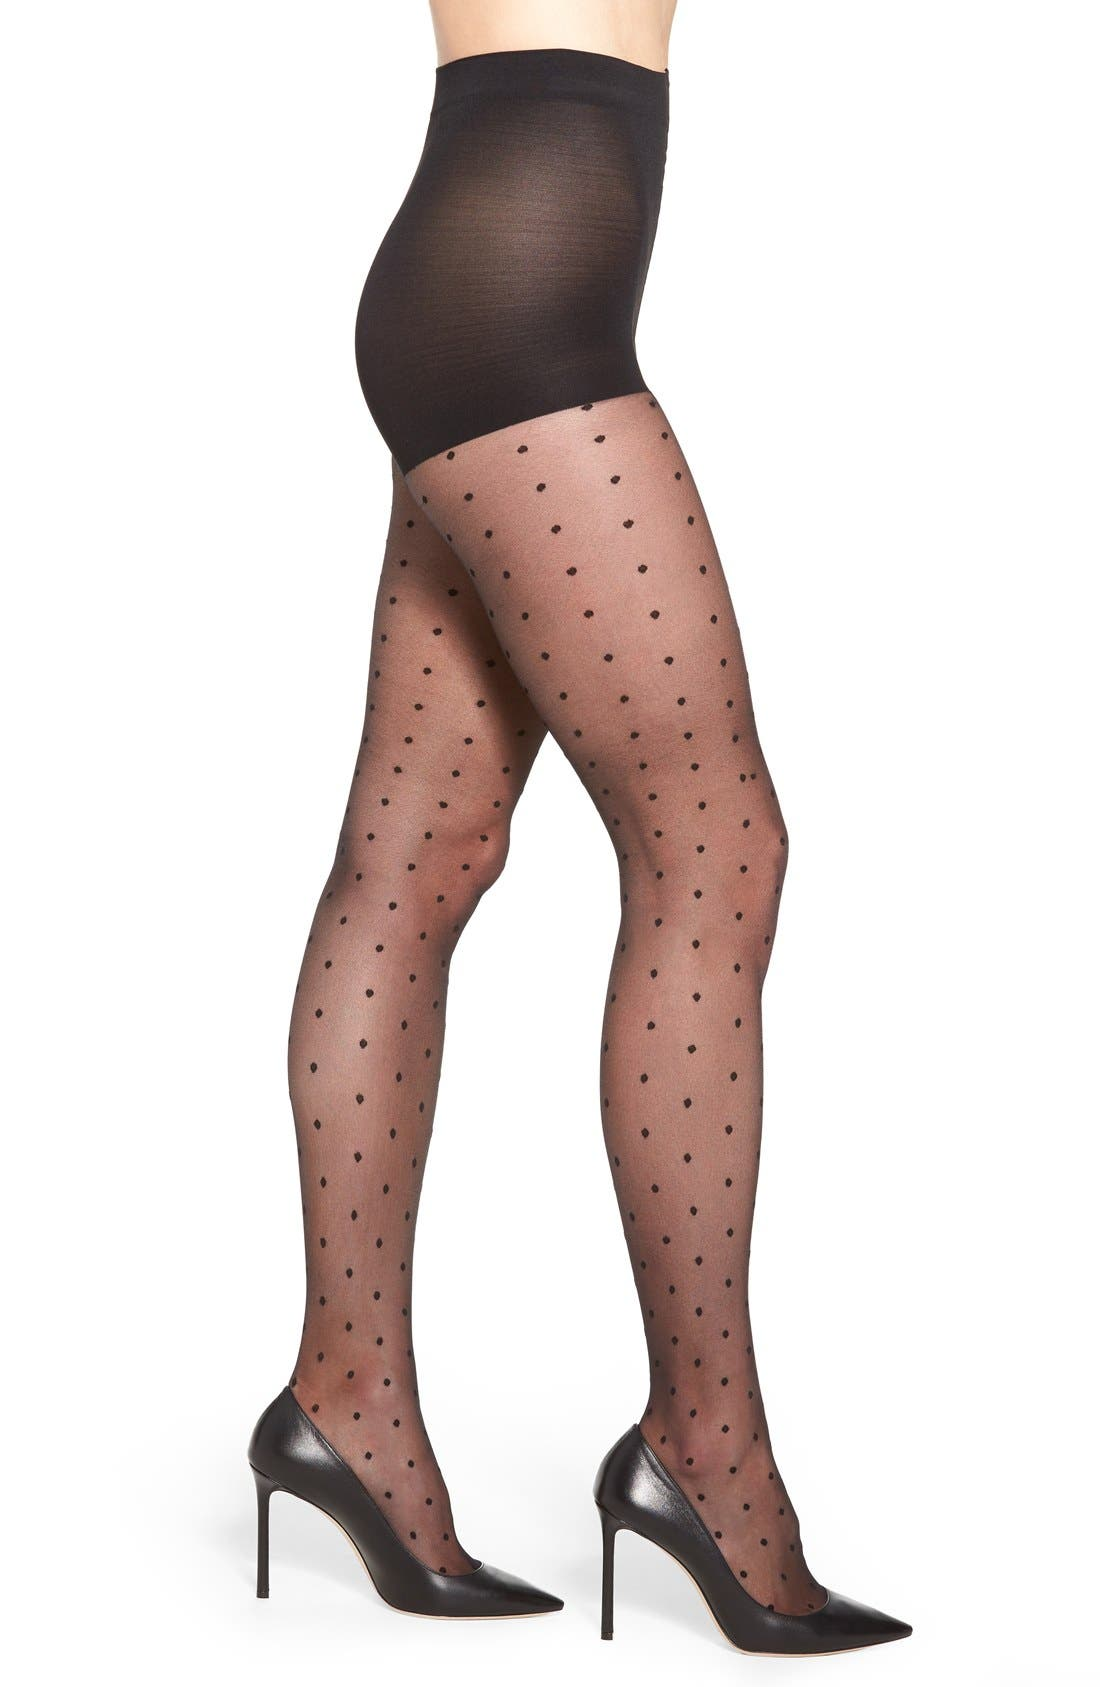 Nordstrom Polka Dot Tights